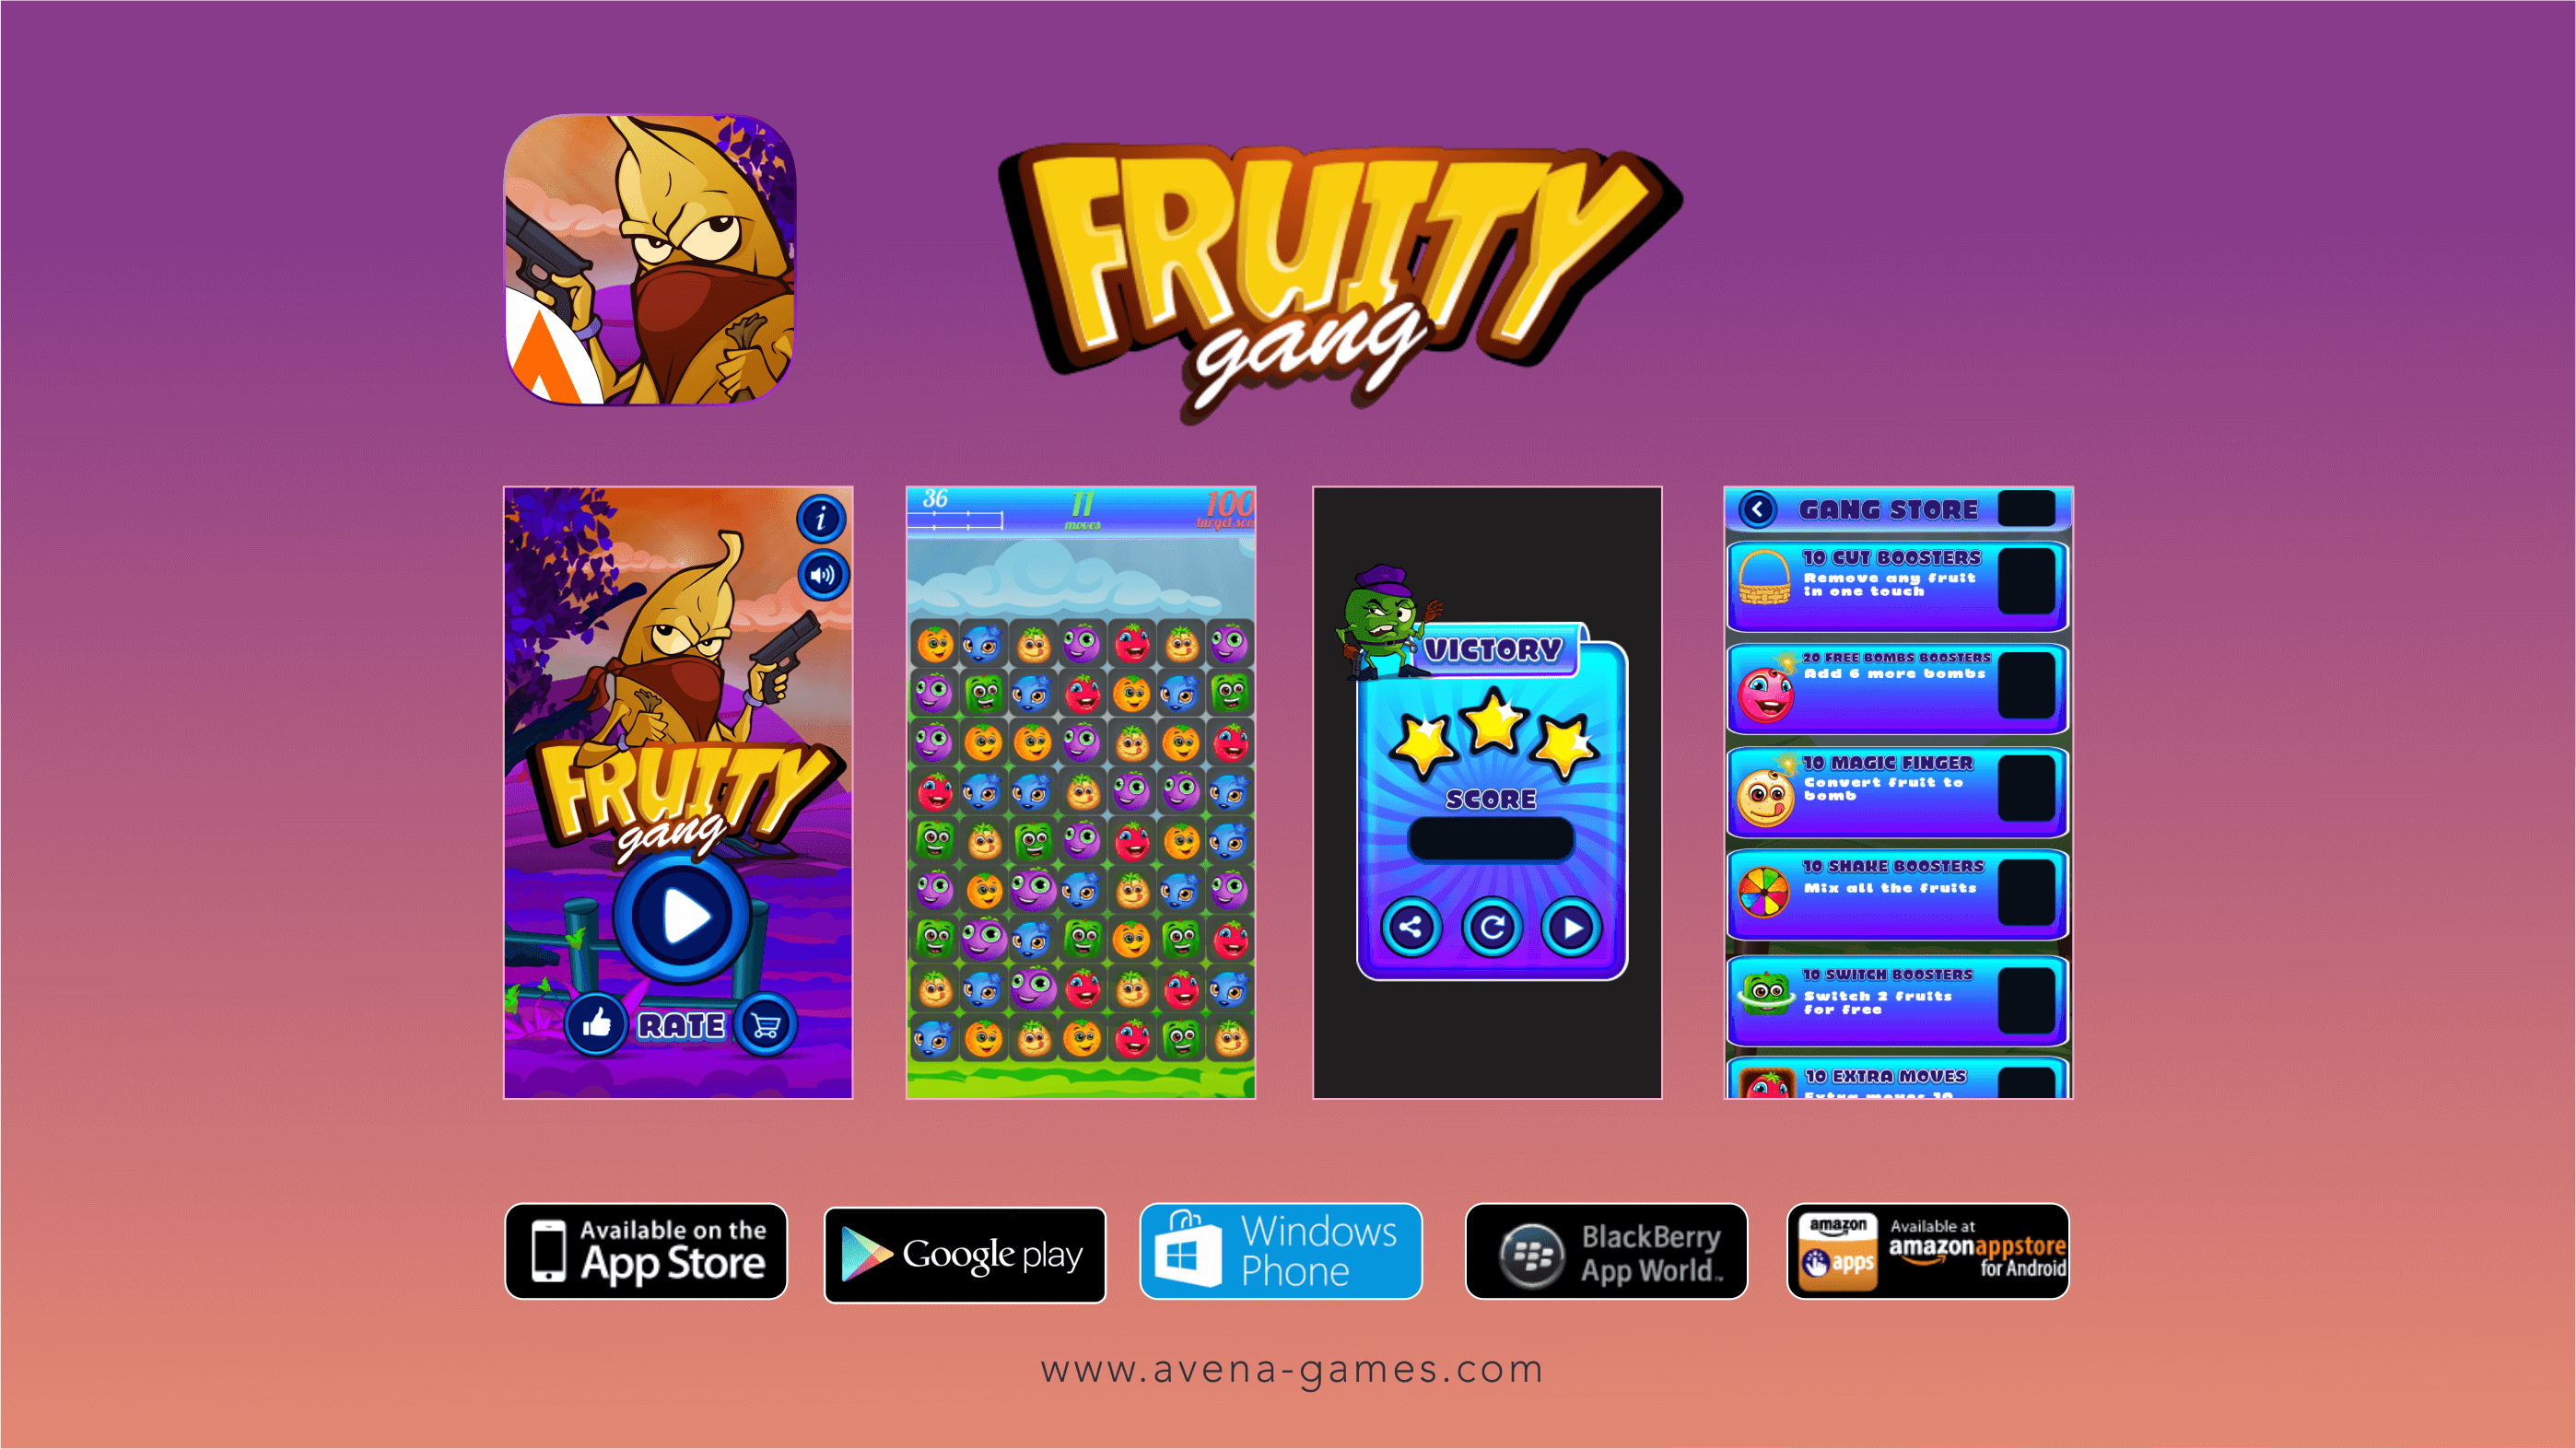 fruity gang screen